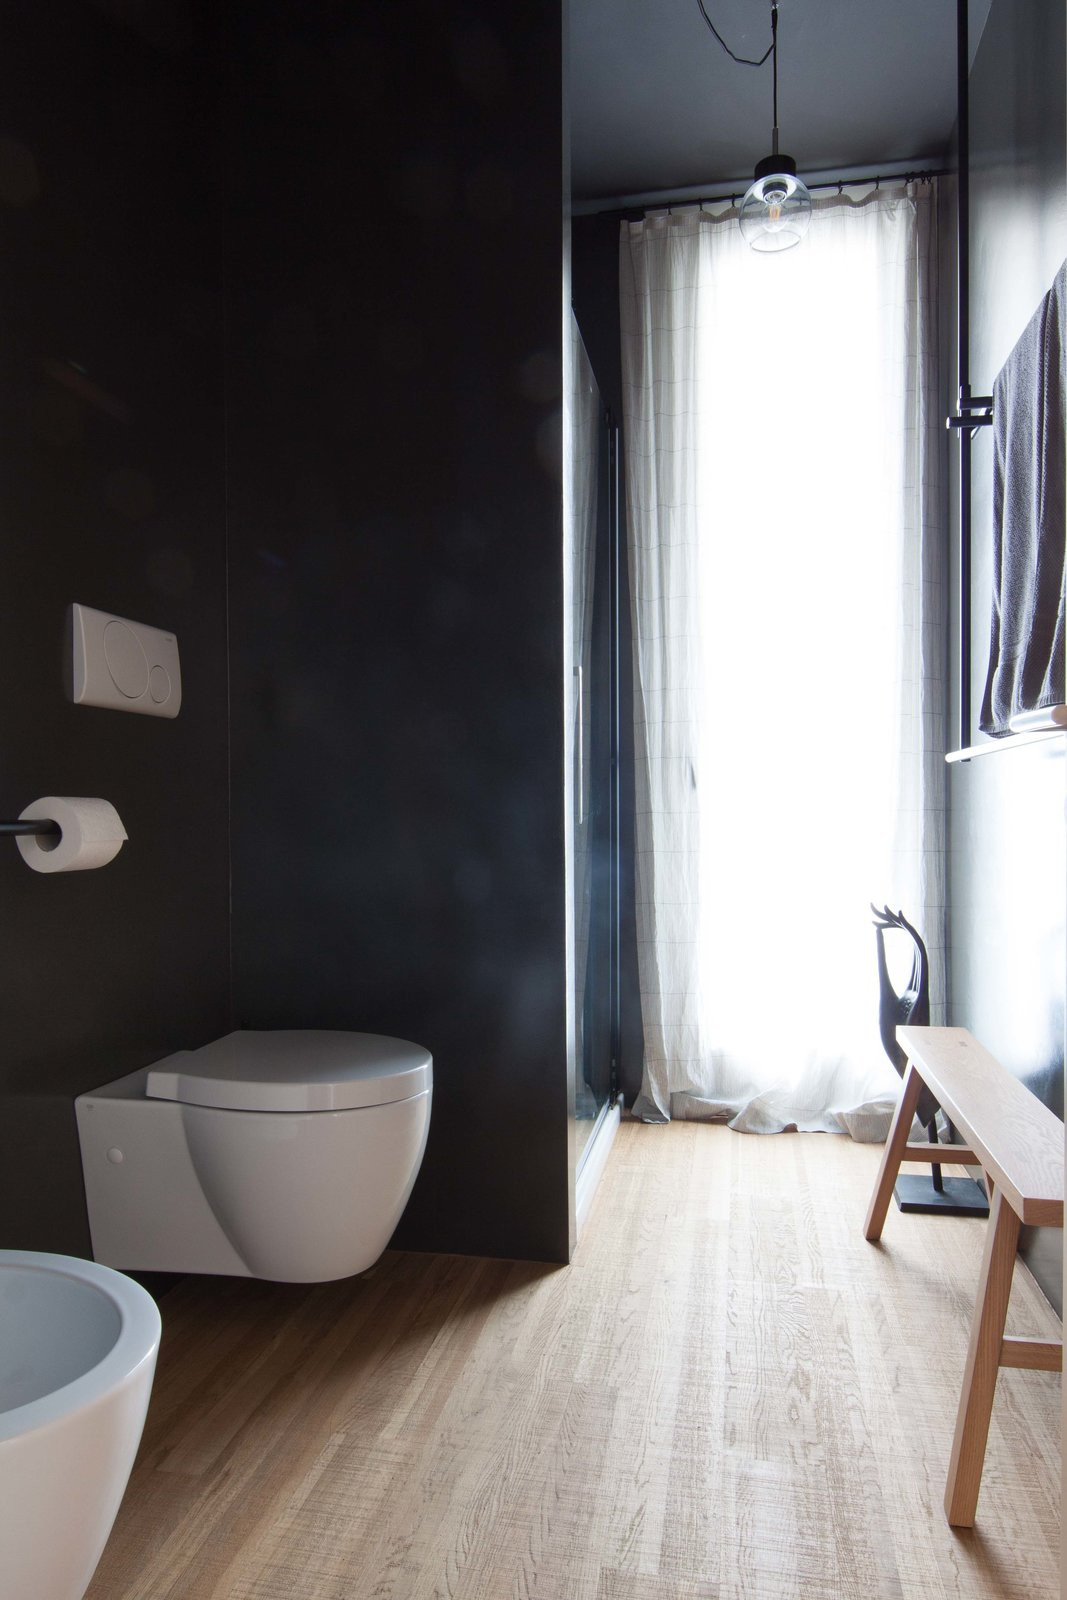 Tagged: Bath Room, Medium Hardwood Floor, Pendant Lighting, Enclosed Shower, Concrete Wall, and One Piece Toilet.  Interior LP by Didonè Comacchio